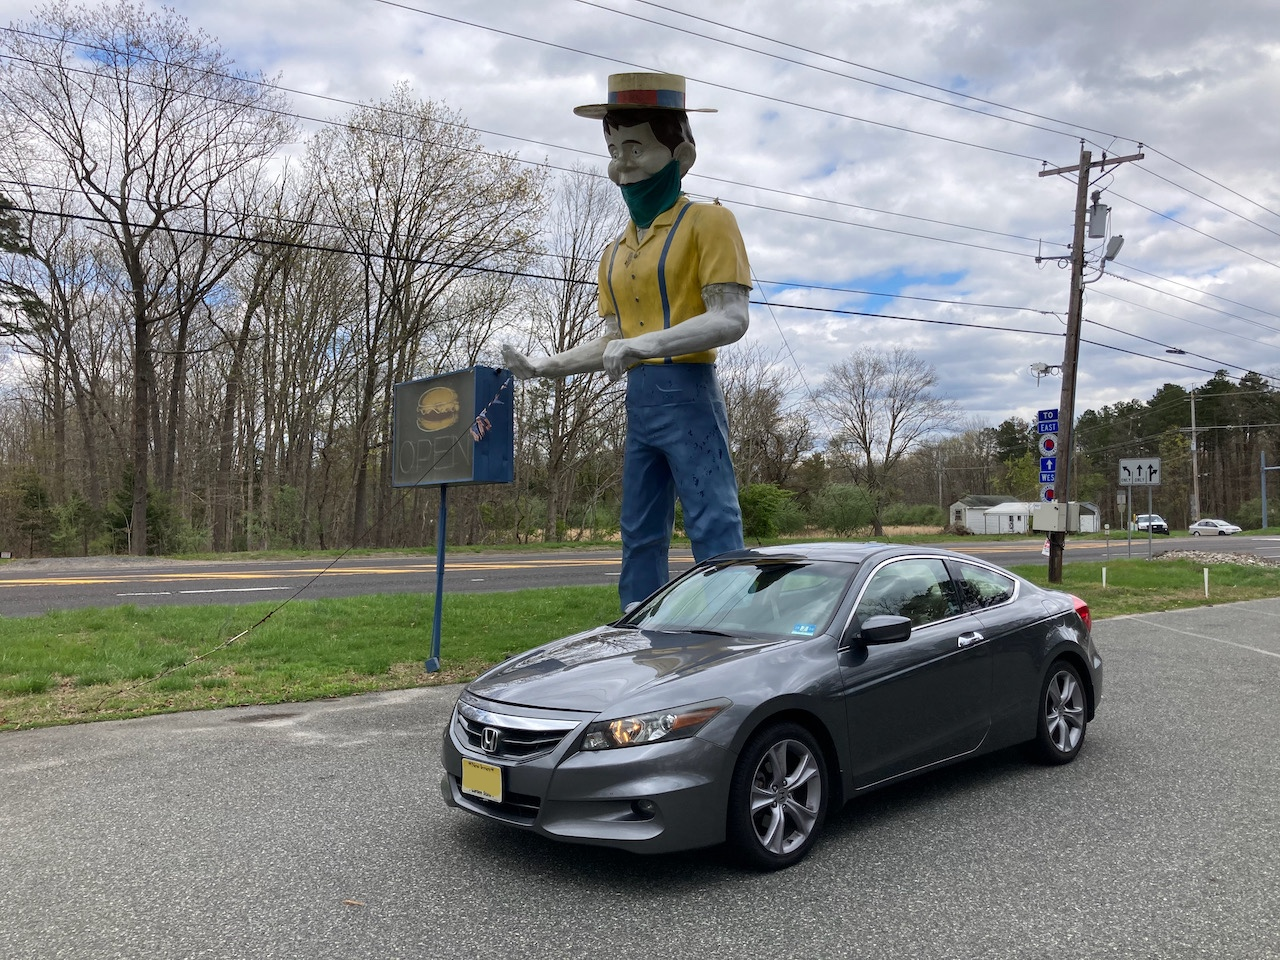 2012 Honda Accord parked in front of statue of man wearing hat and mask.